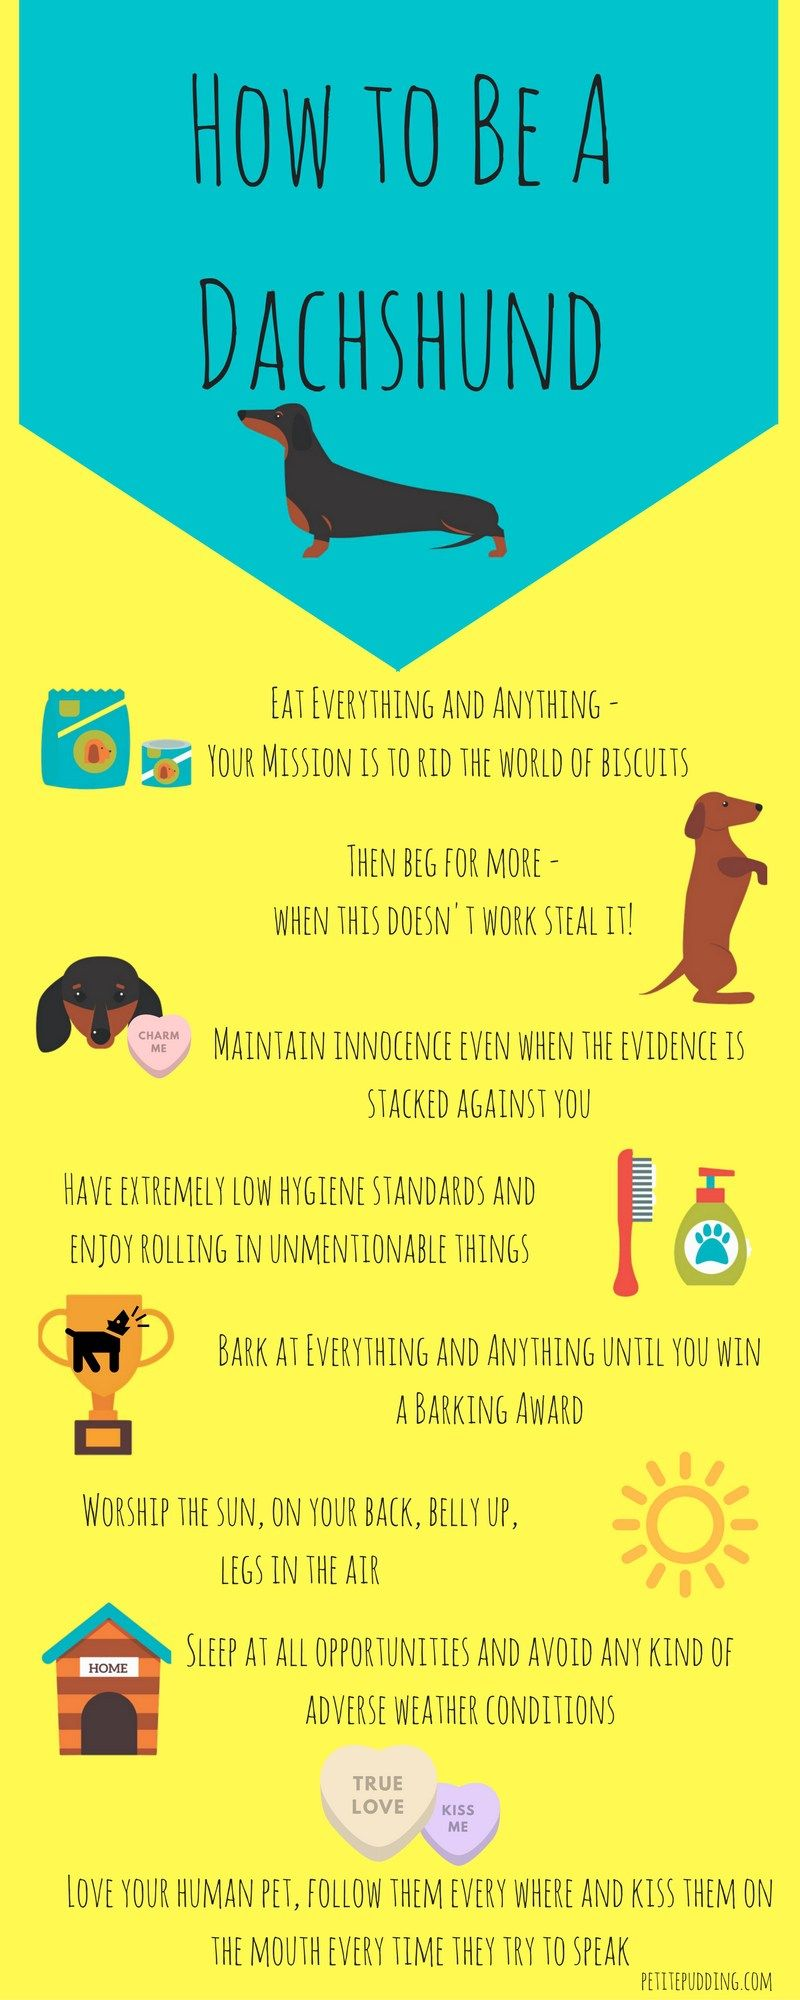 How To Be A Dachshund Infographic Funny Infographic Showing The World Through Those Cheeky Sausage Dog Eyes Who Funny Dachshund Dachshund Puppies Dachshund